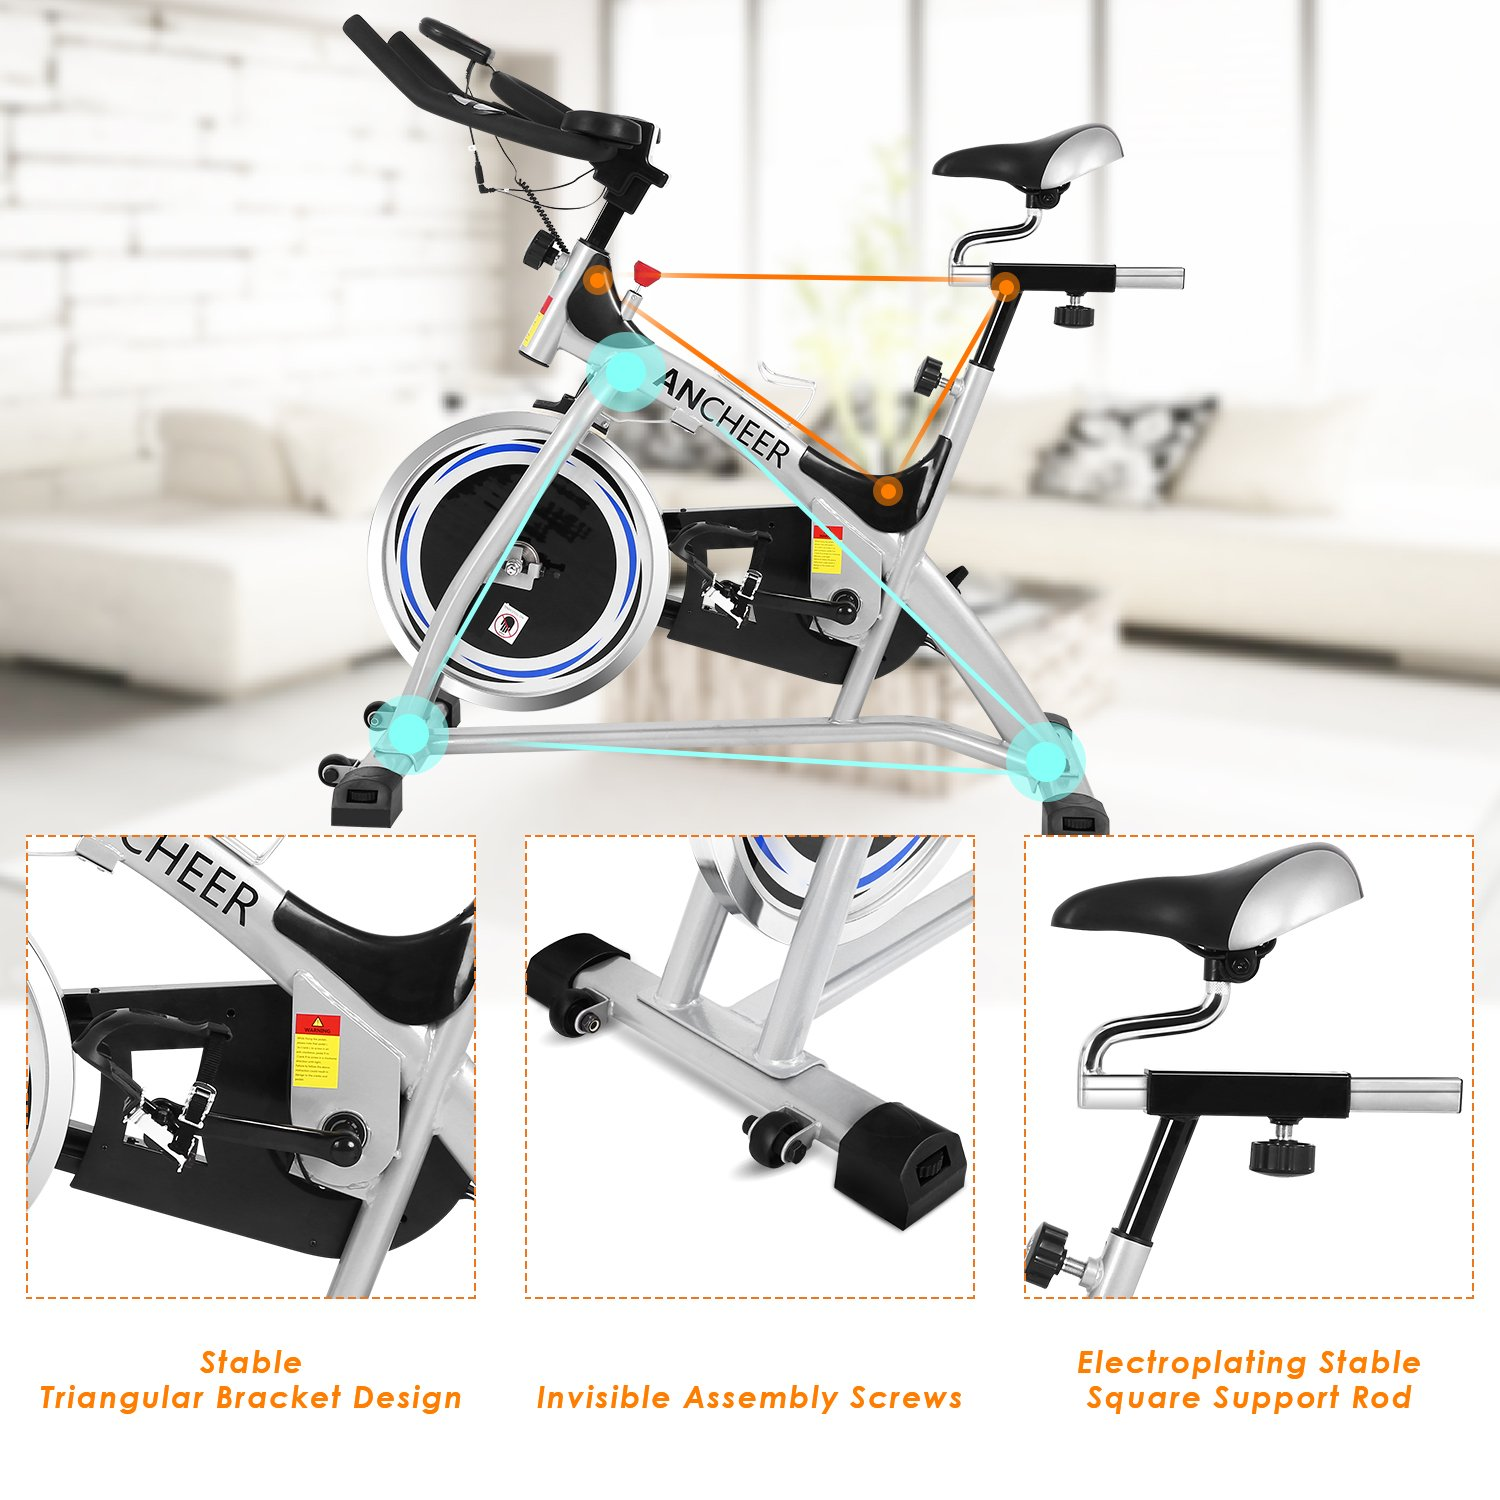 ANCHEER Stationary Bike, 40 LBS Flywheel Belt Drive Indoor Cycling Exercise Bike with Pulse, Elbow Tray (Model: ANCHEER-A5001) (Sliver) by ANCHEER (Image #9)